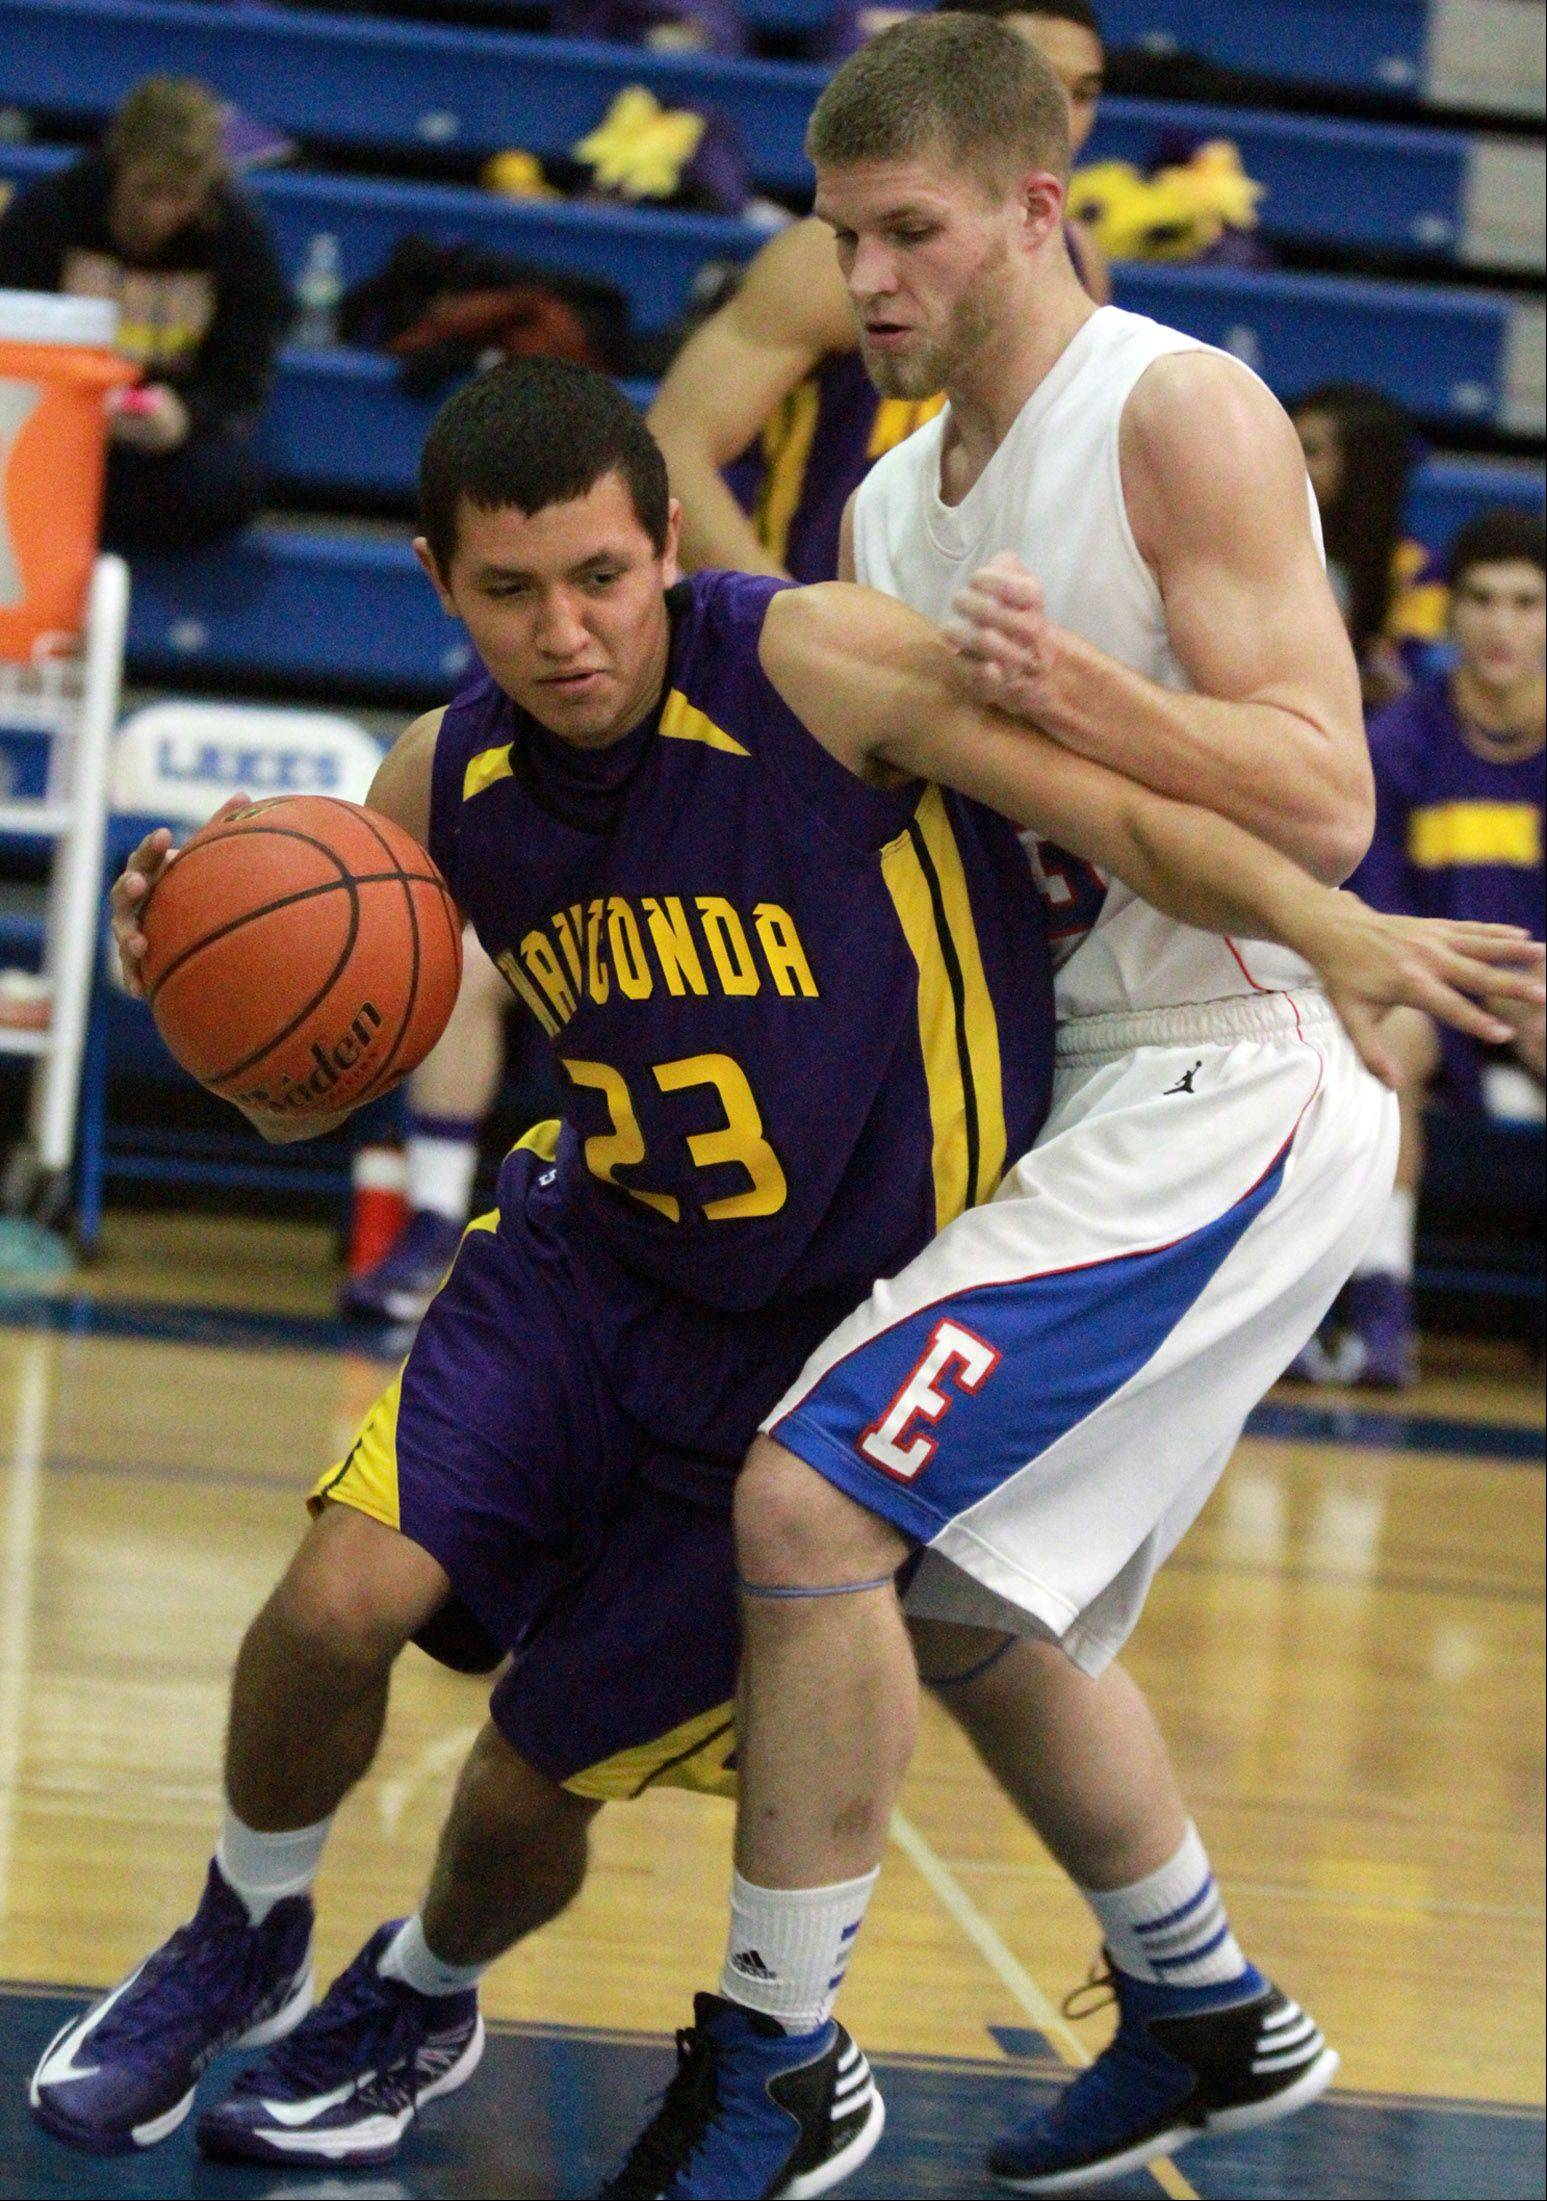 Images: Wauconda vs. Lakes boys basketball